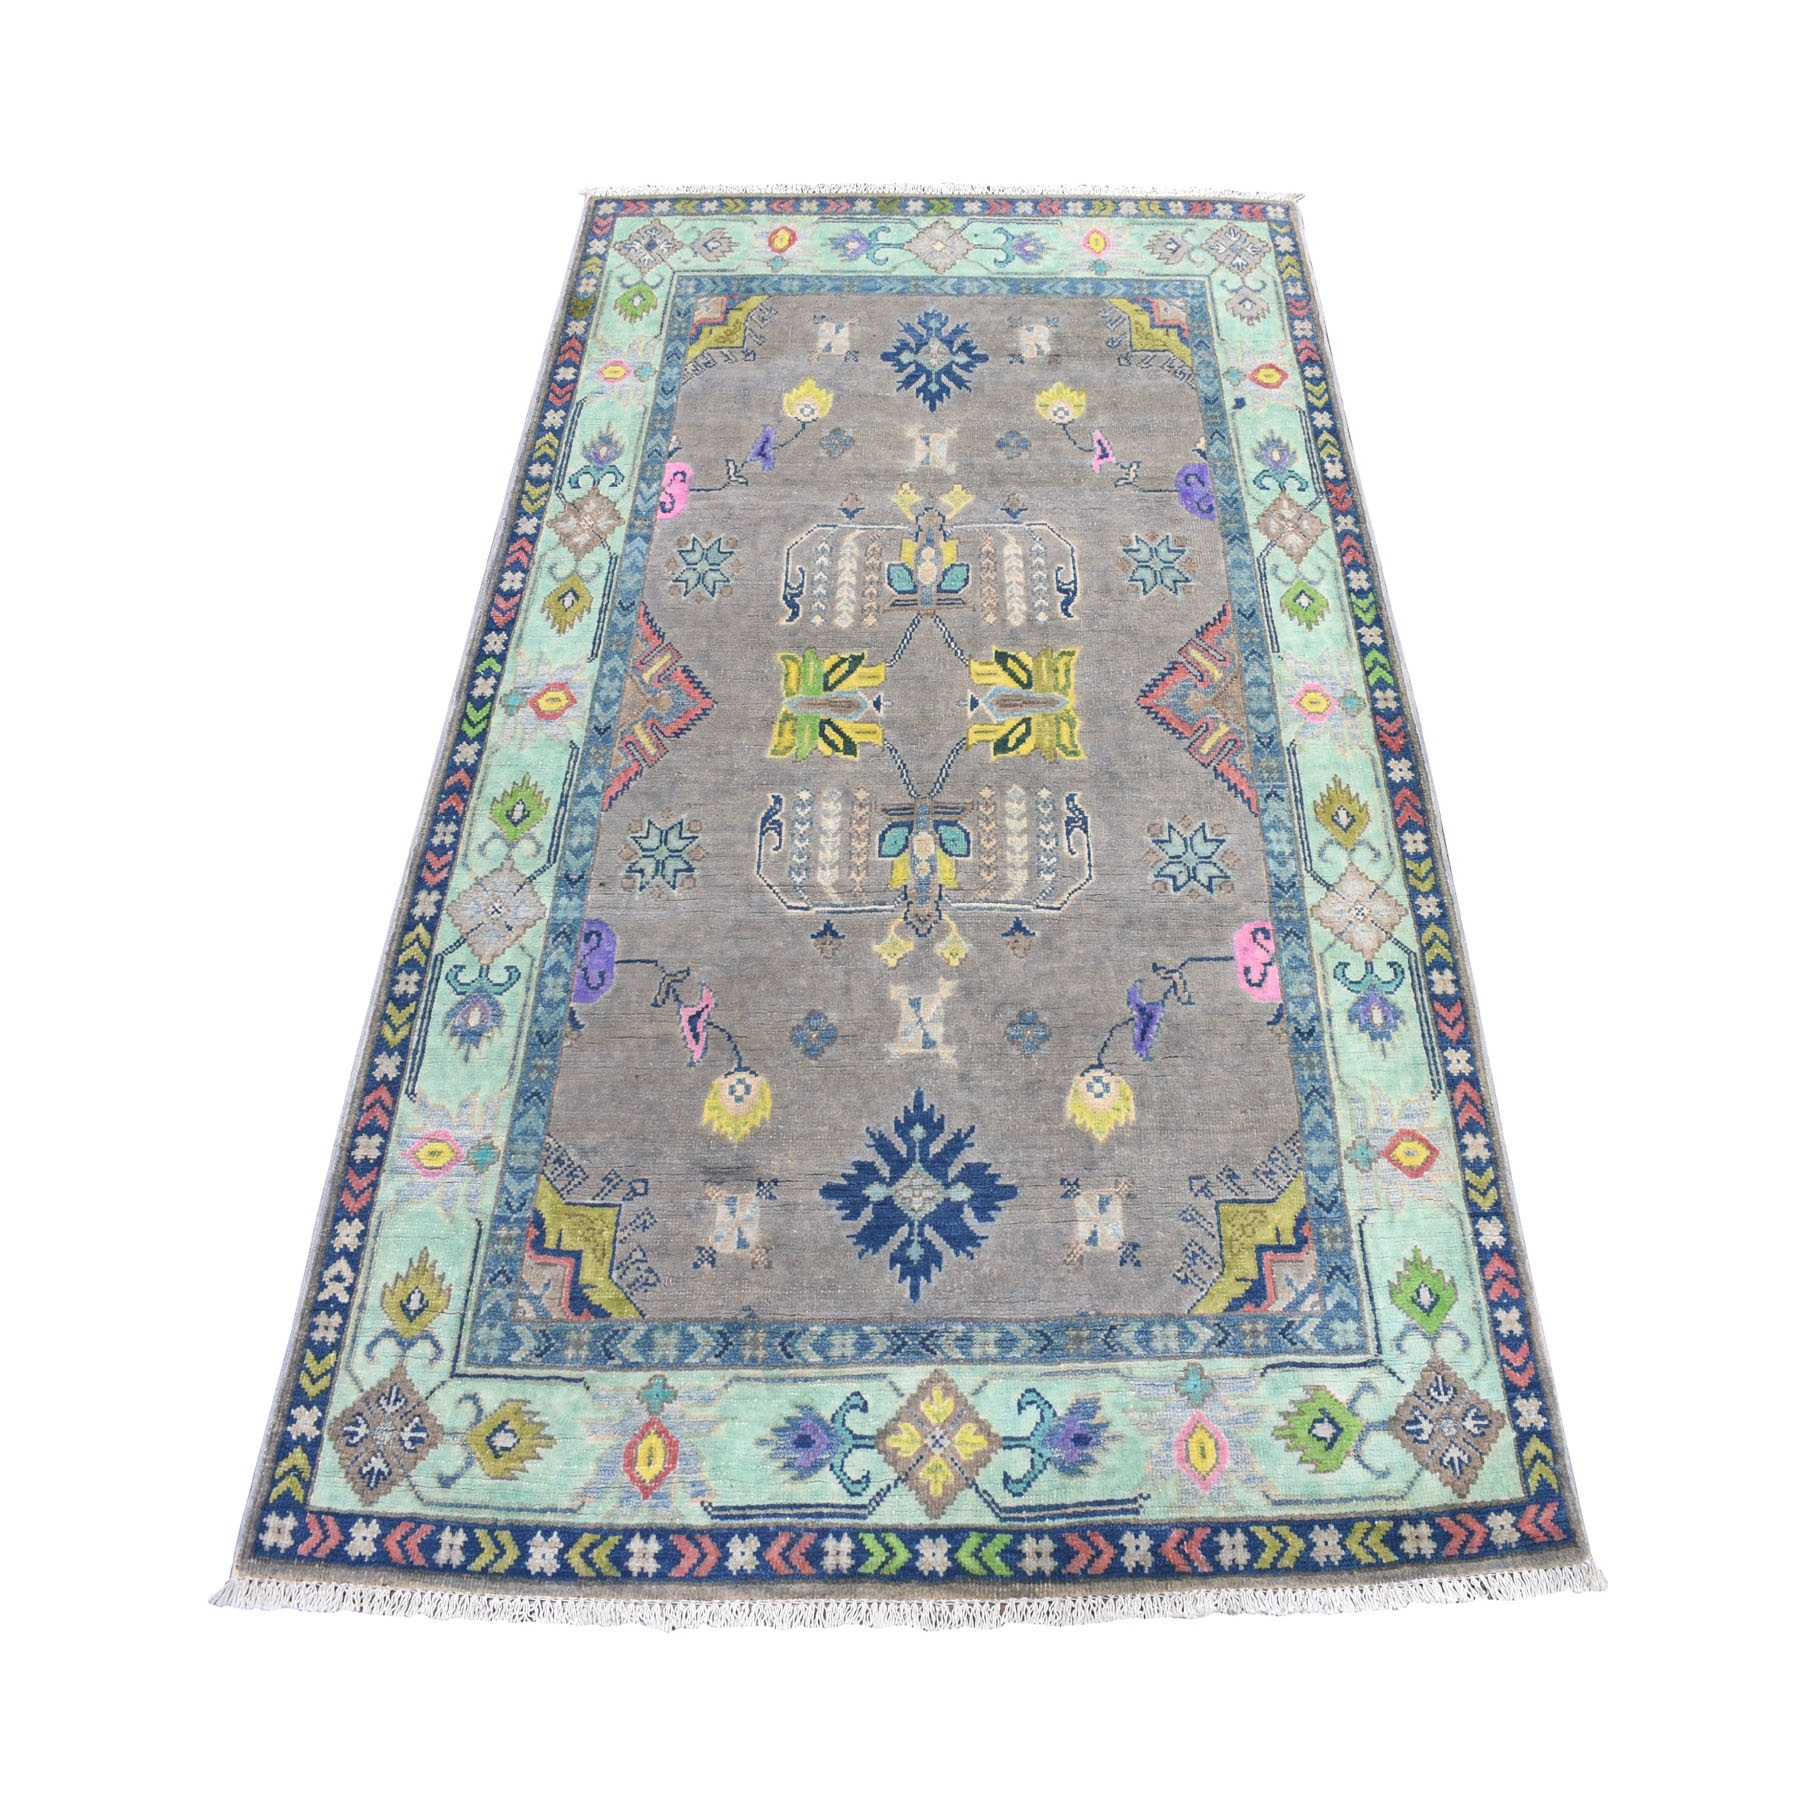 4'x6' Colorful Gray Fusion Kazak Pure Wool Geometric Design Hand Knotted Oriental Rug 52497